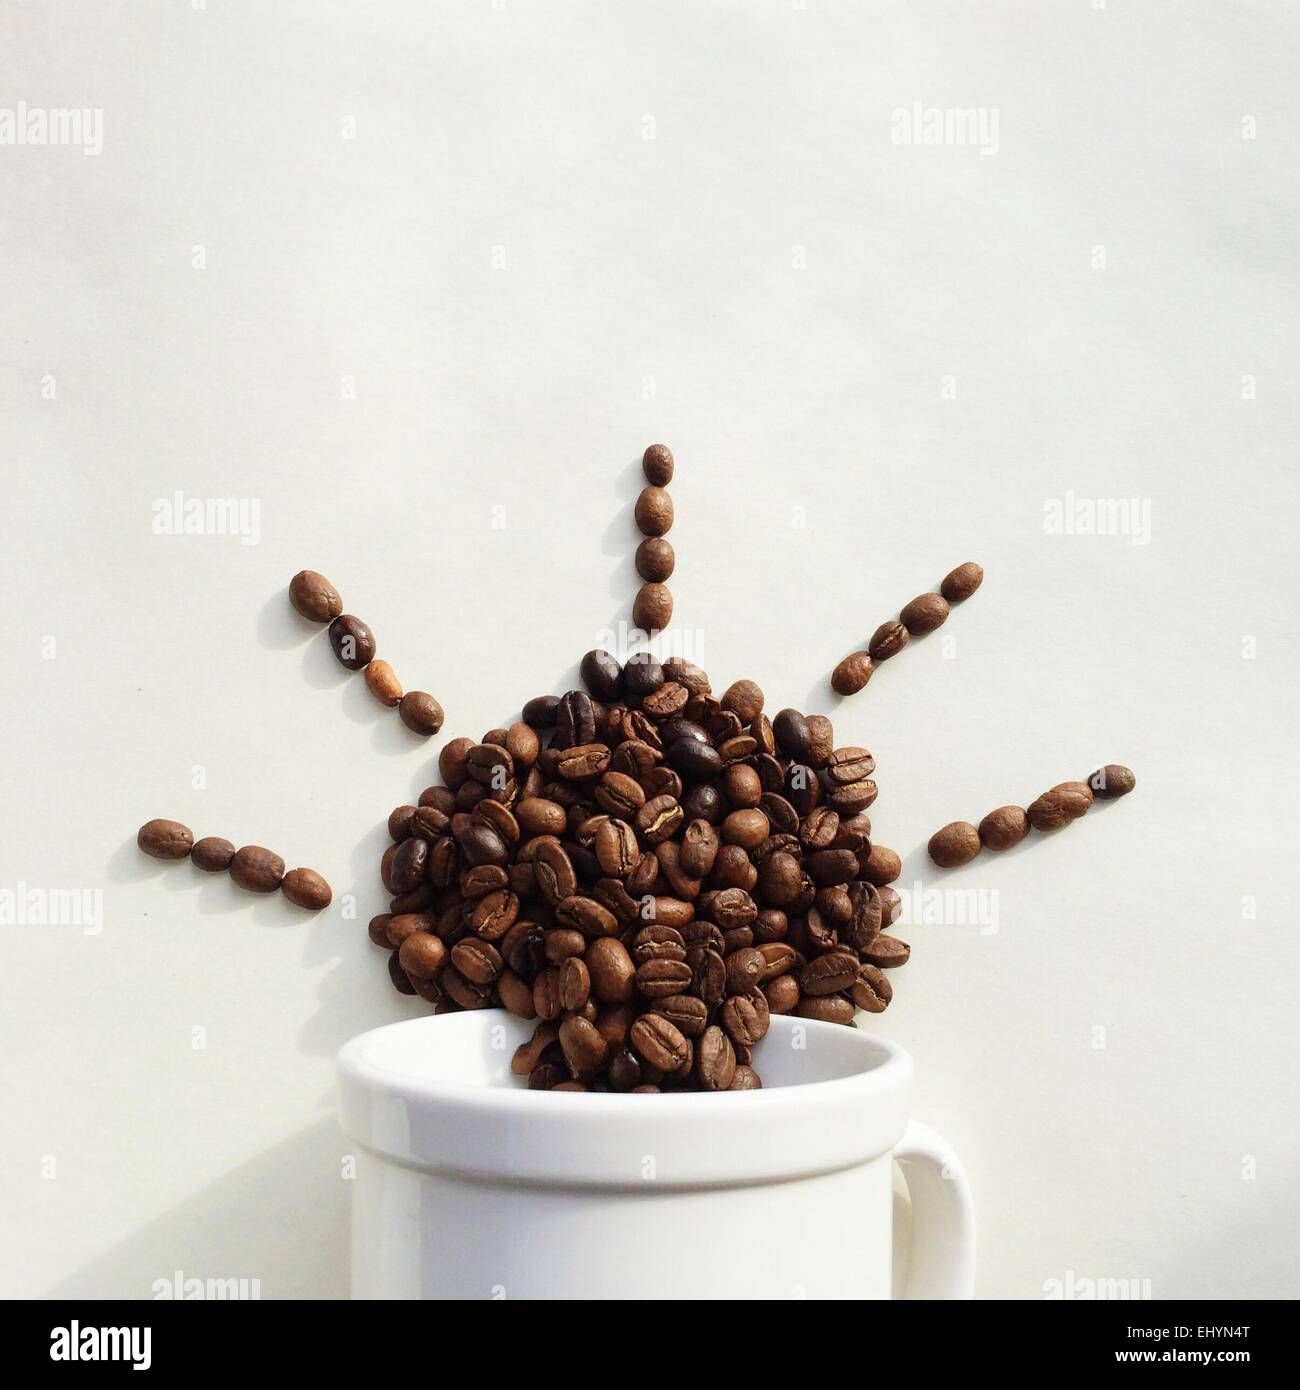 Coffee beans coming out of a cup in the shape of the sun - Stock Image